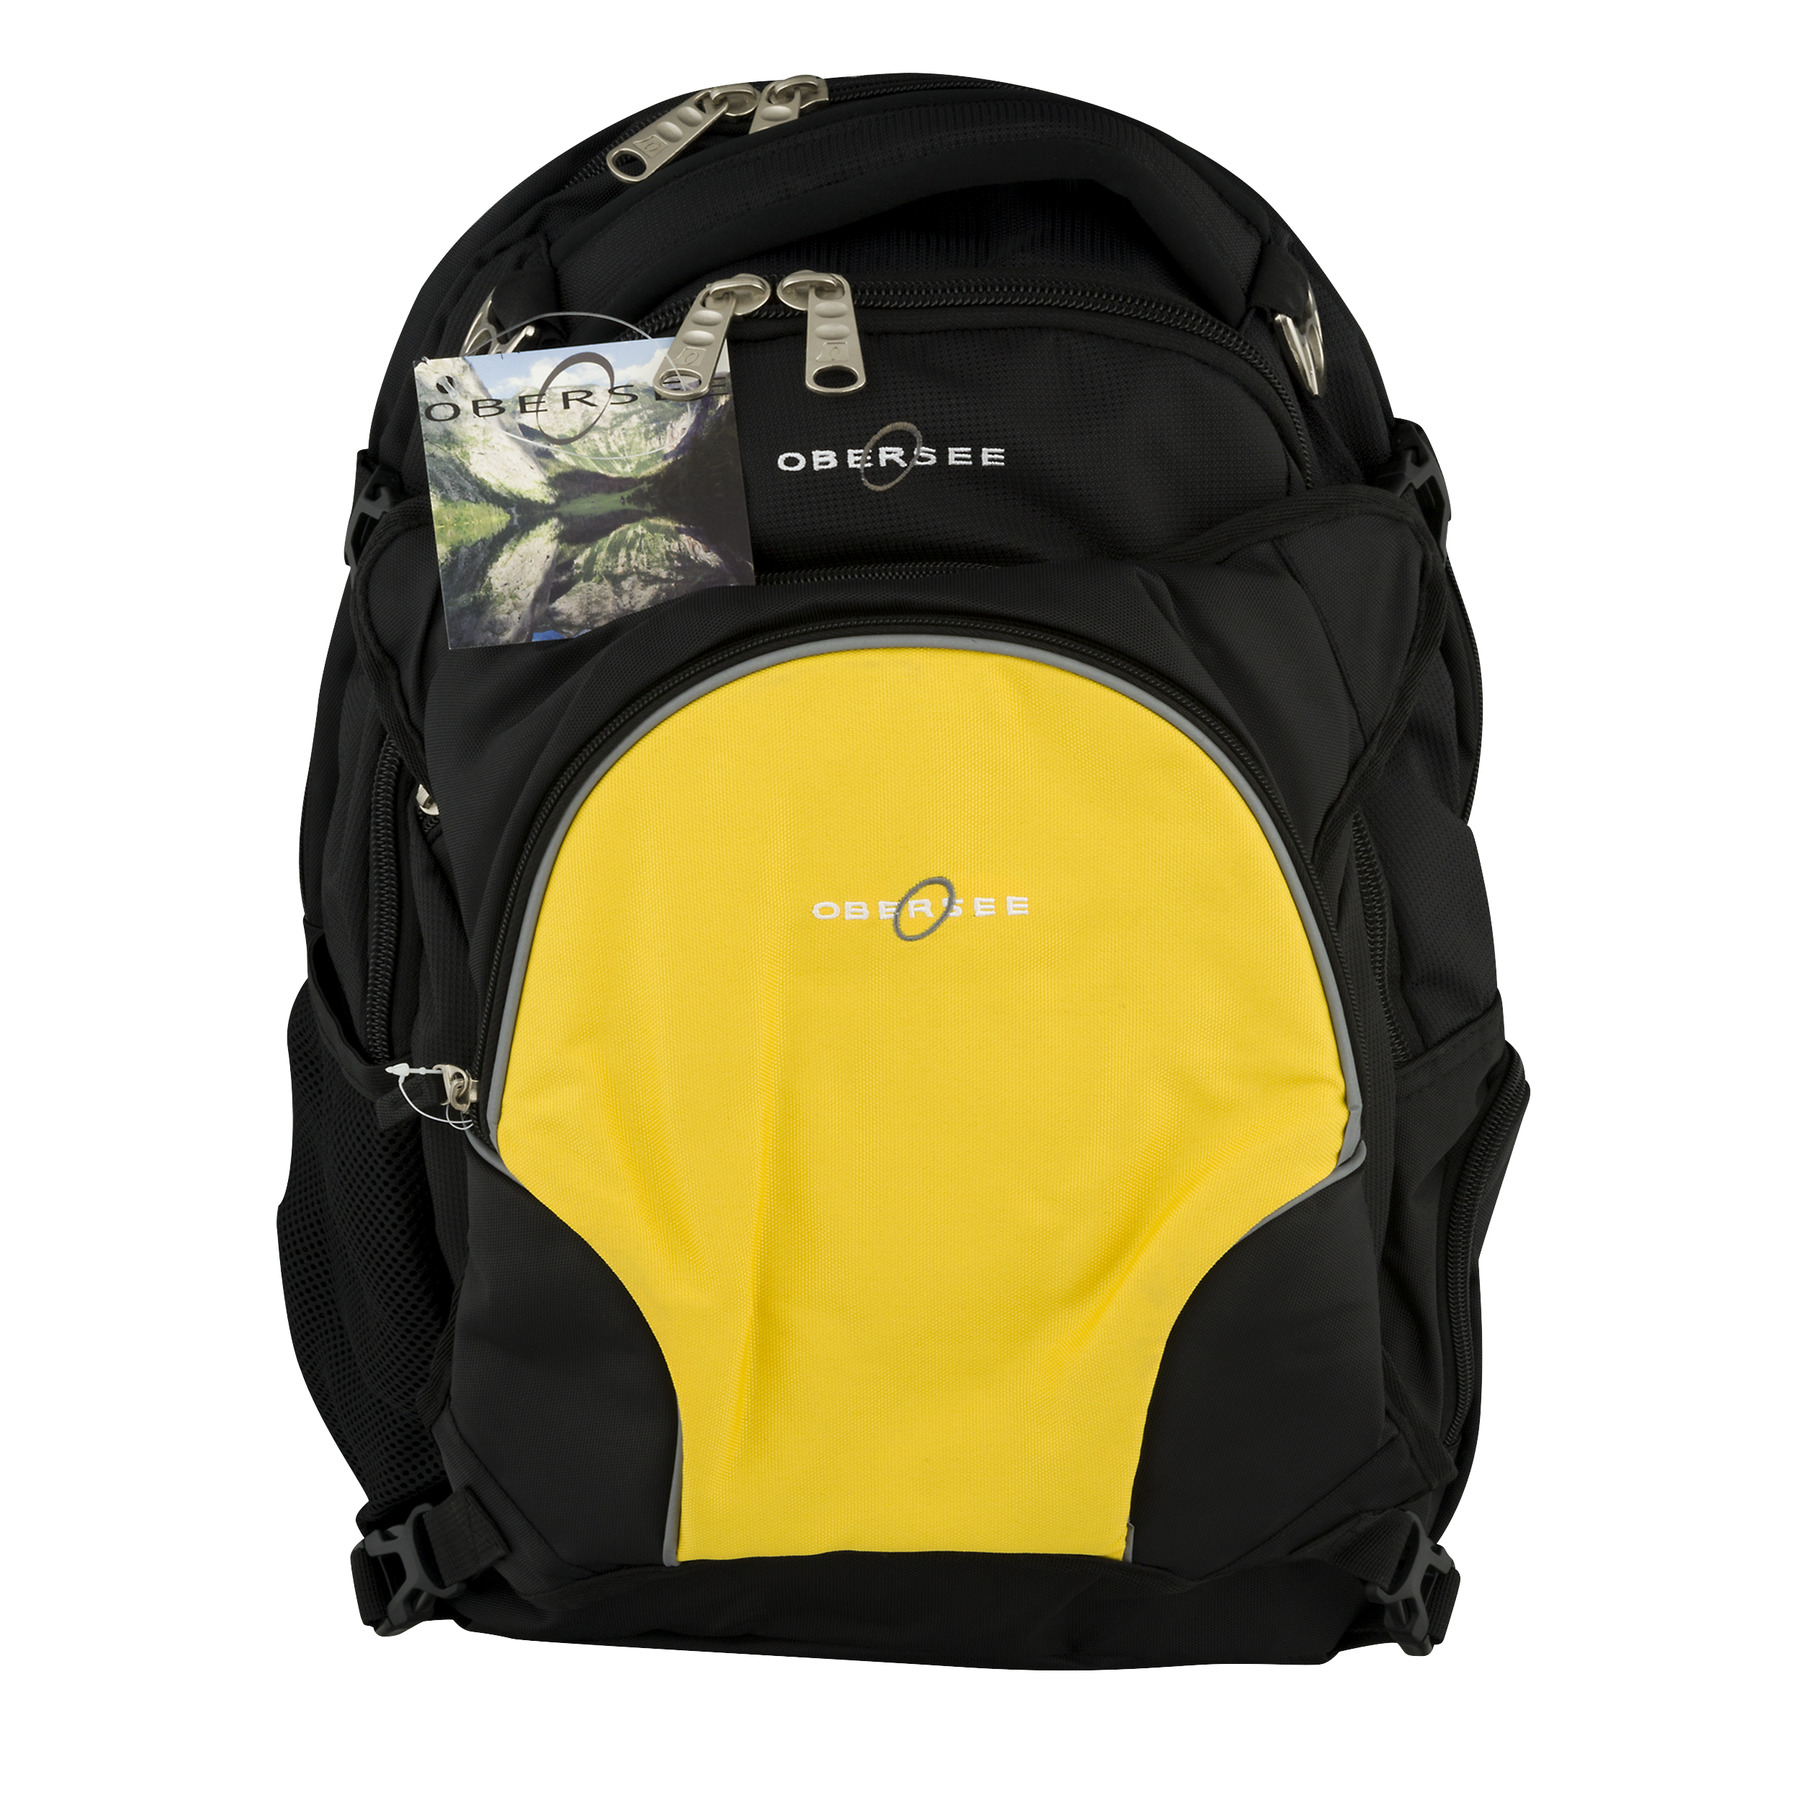 Obersee Oslo Diaper Bag Backpack and Cooler, Black/Yellow